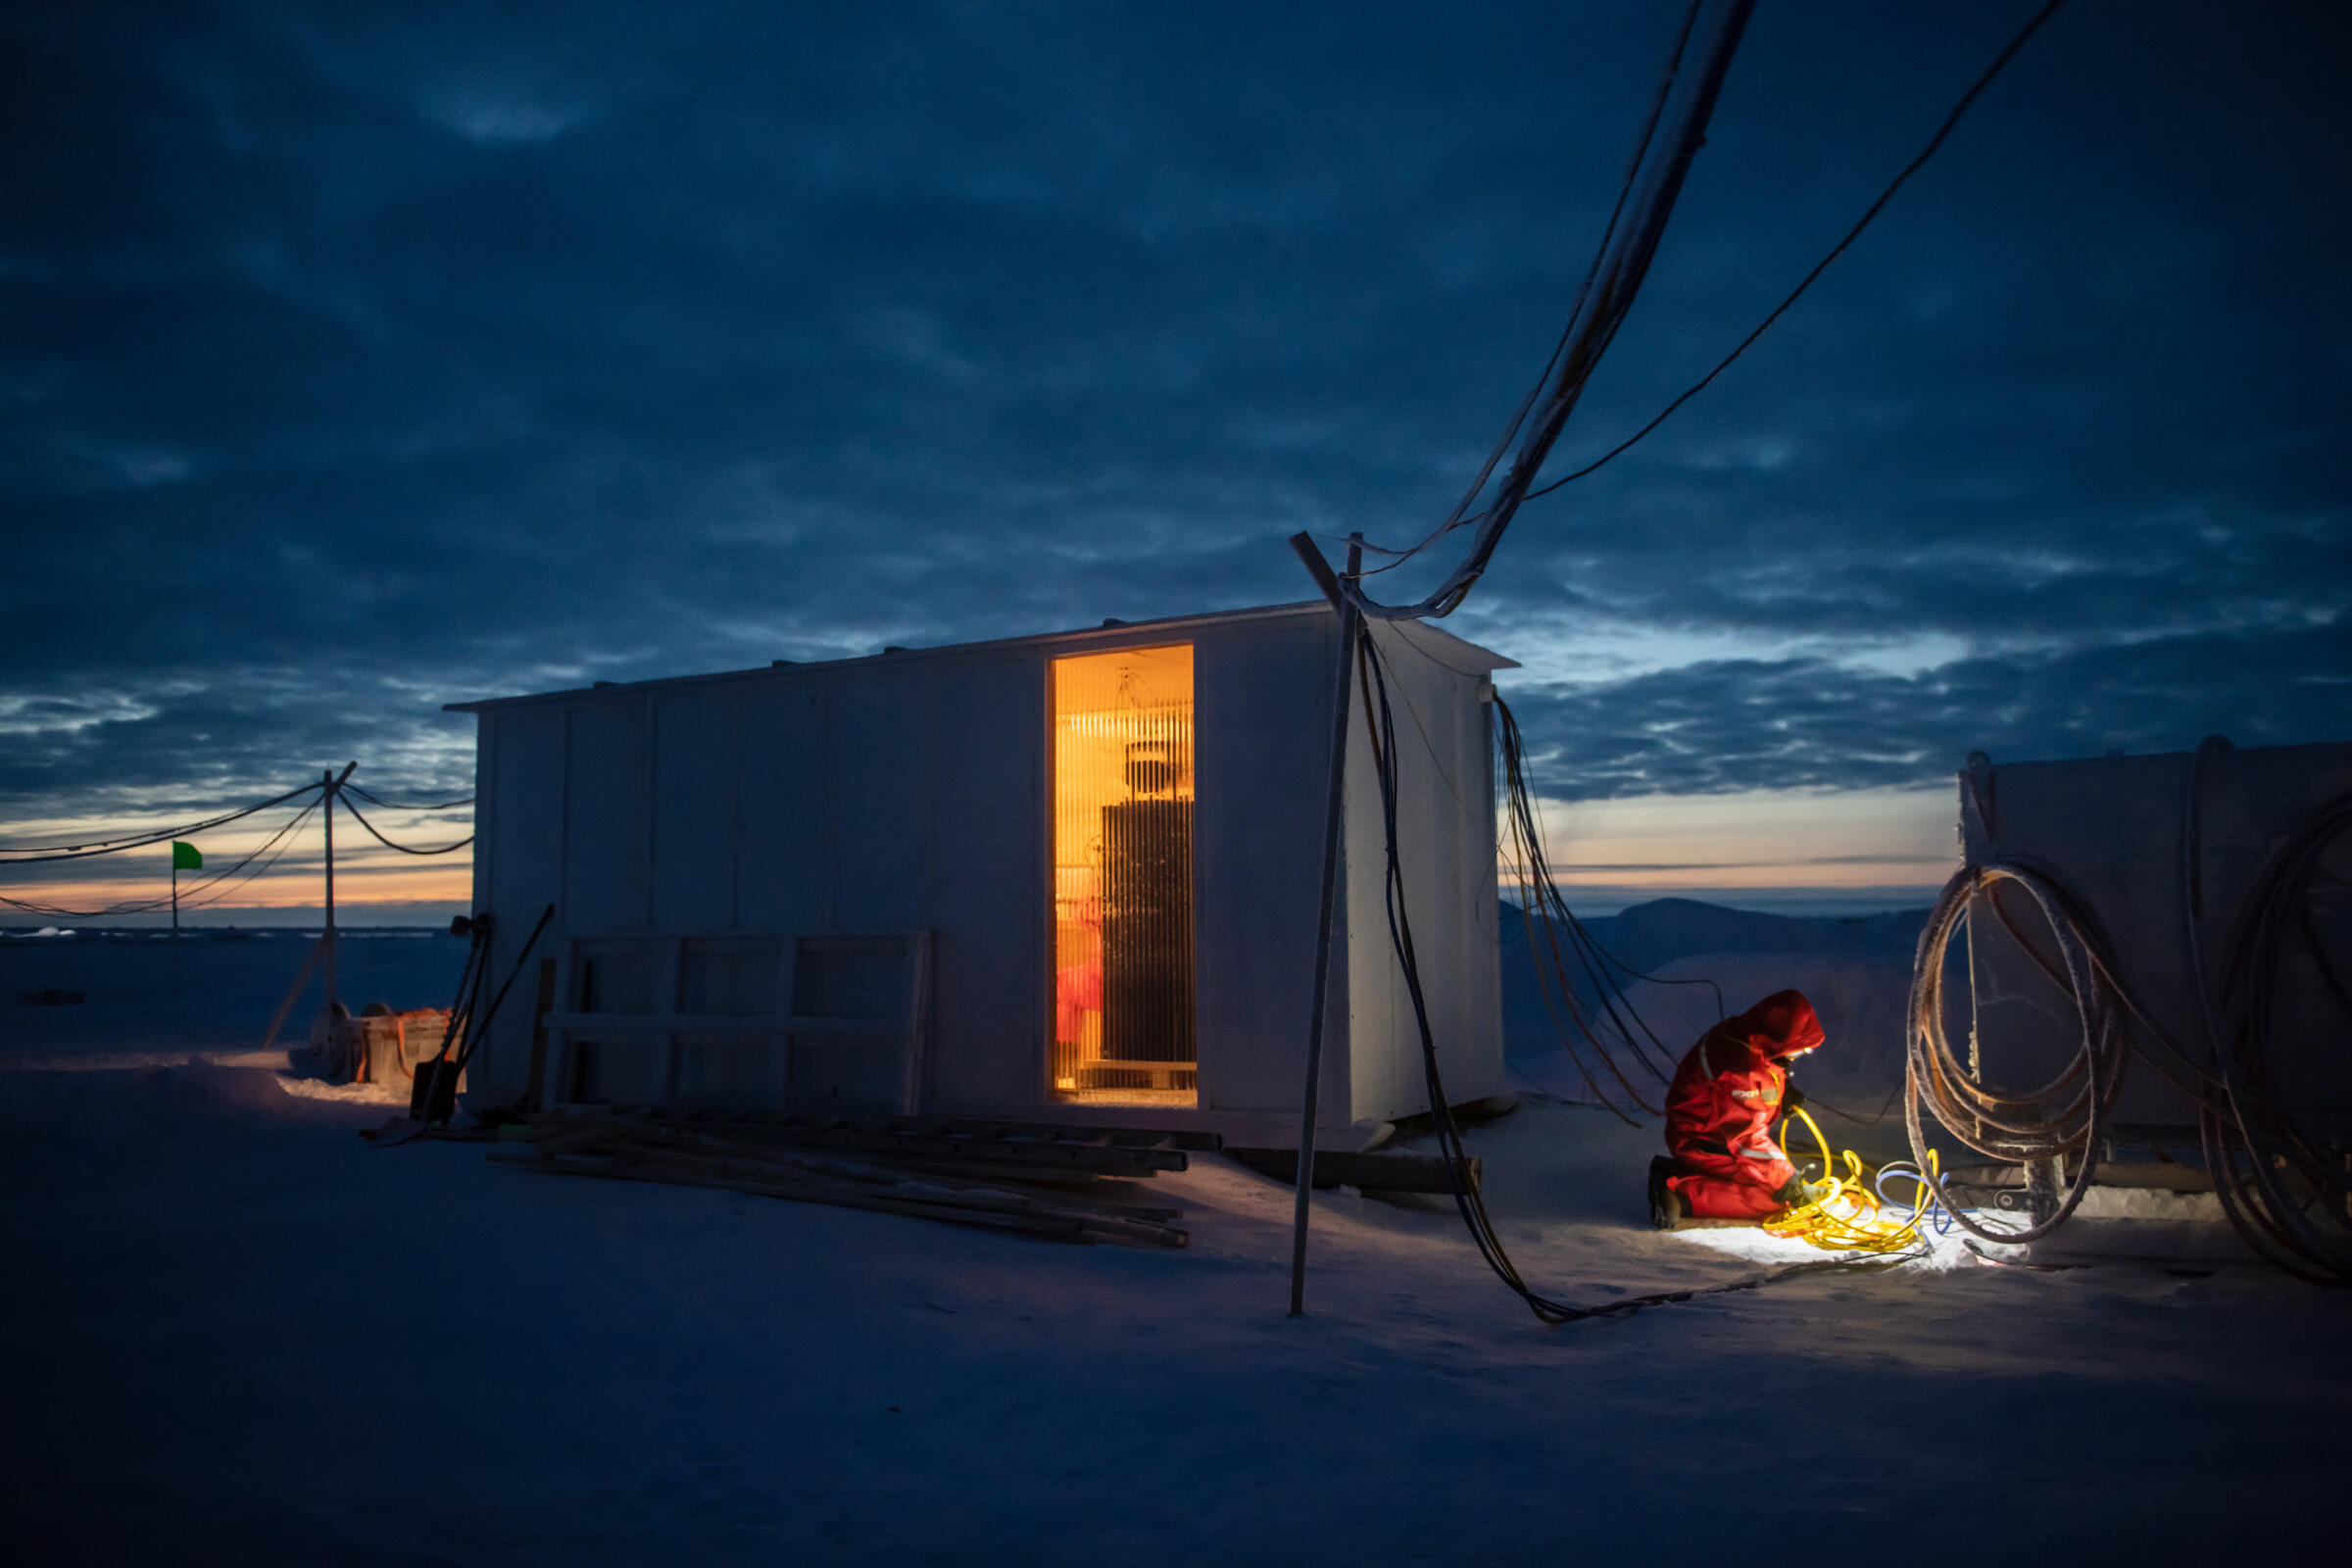 Warm, orange light shines through the doorway of the Met City tech hut—a container to keep computers warm, and large enough to house scientists huddling for warmth, too. A scientist kneels beside the hut untangling yellow cables. Esther Horvath